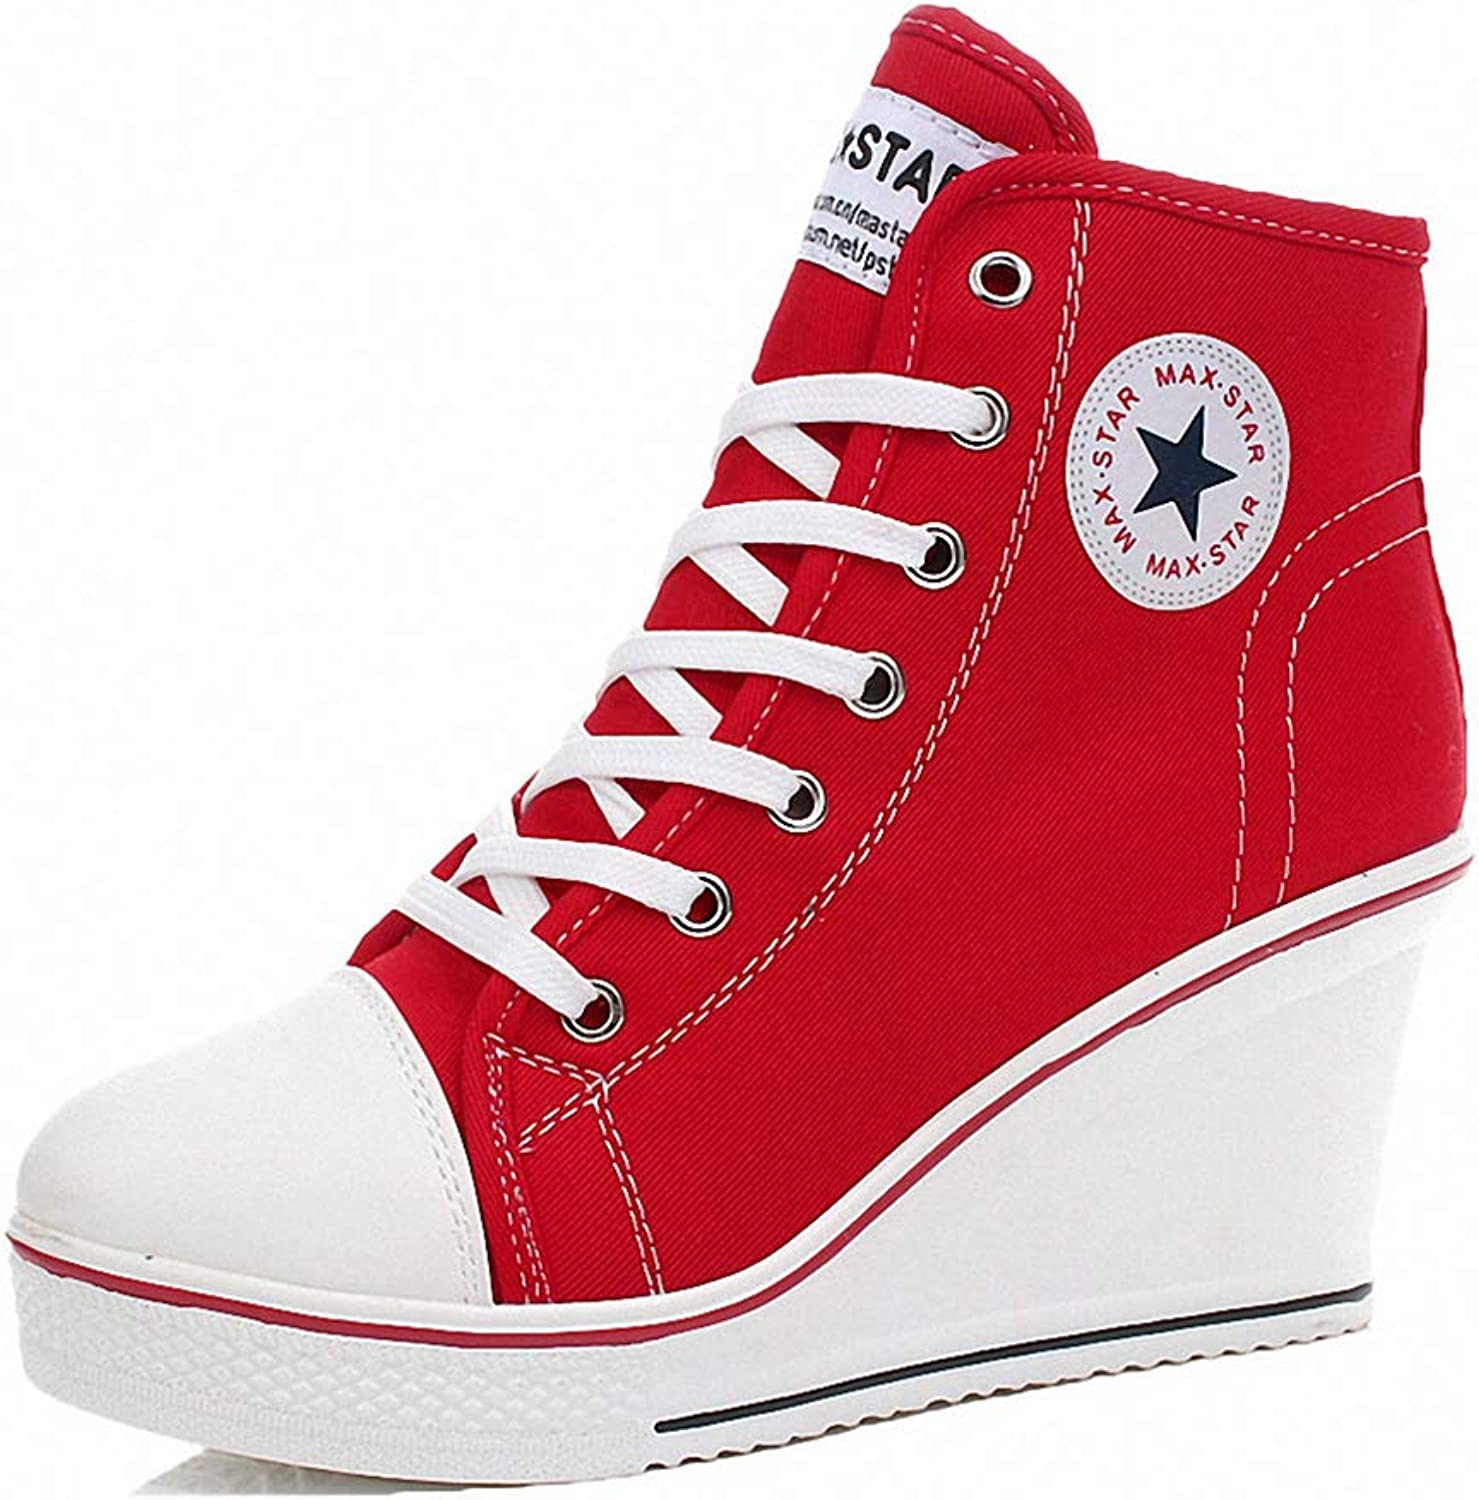 York Zhu Women Fashion Sneaker, Platform Wedges Canvas High Top Sneakers